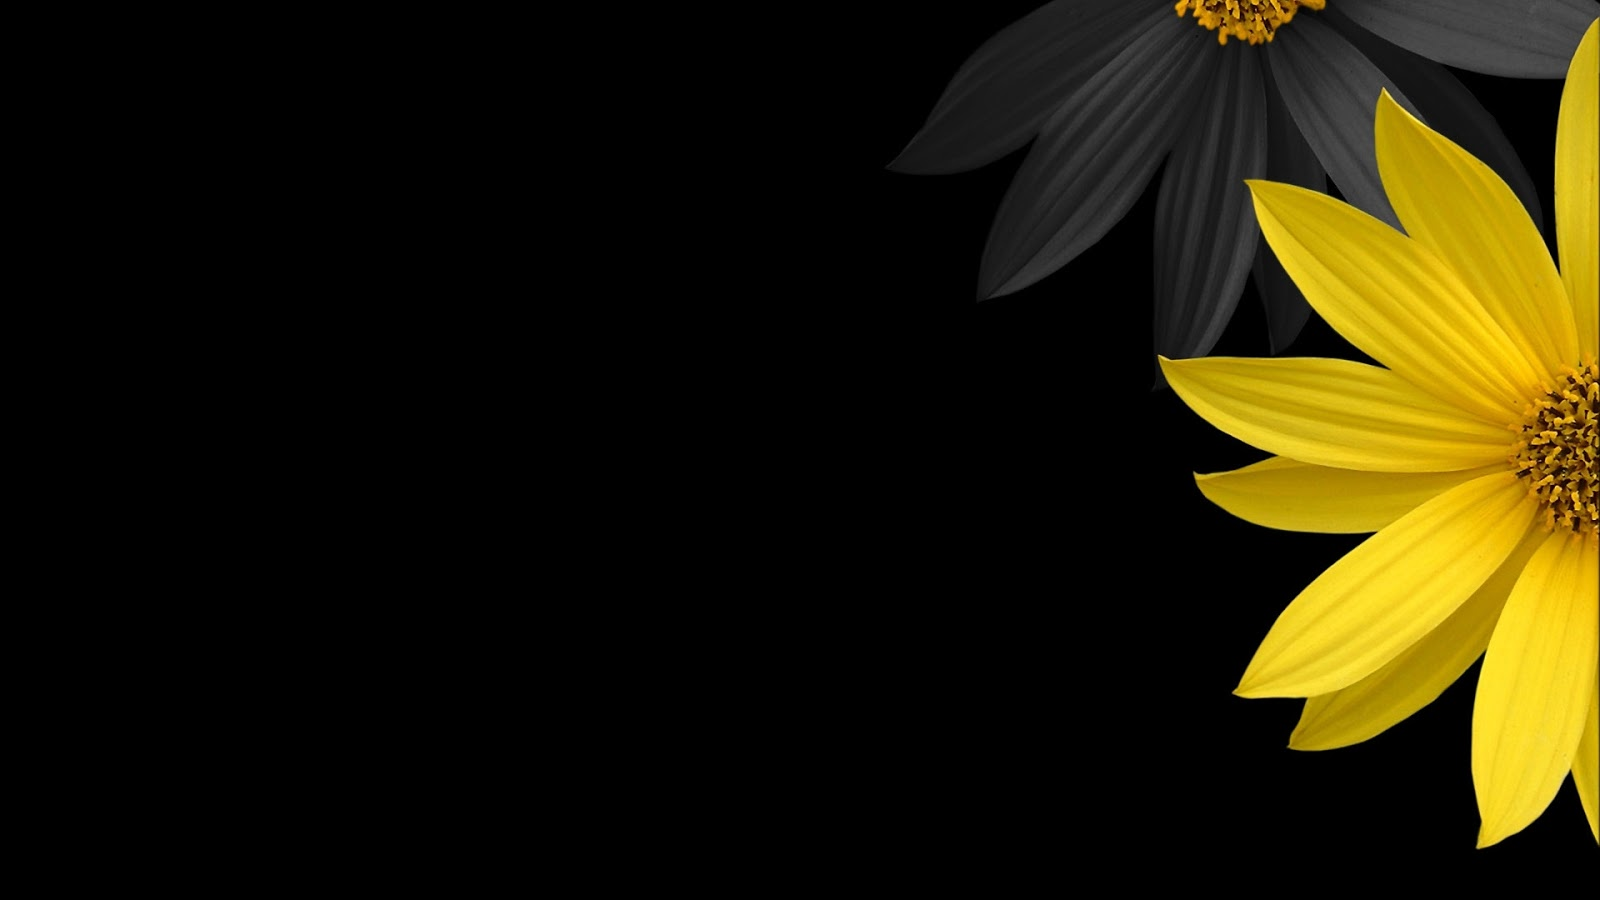 HD Wallpapers 1920x1080 Black background wallpapers yellow flower 1600x900